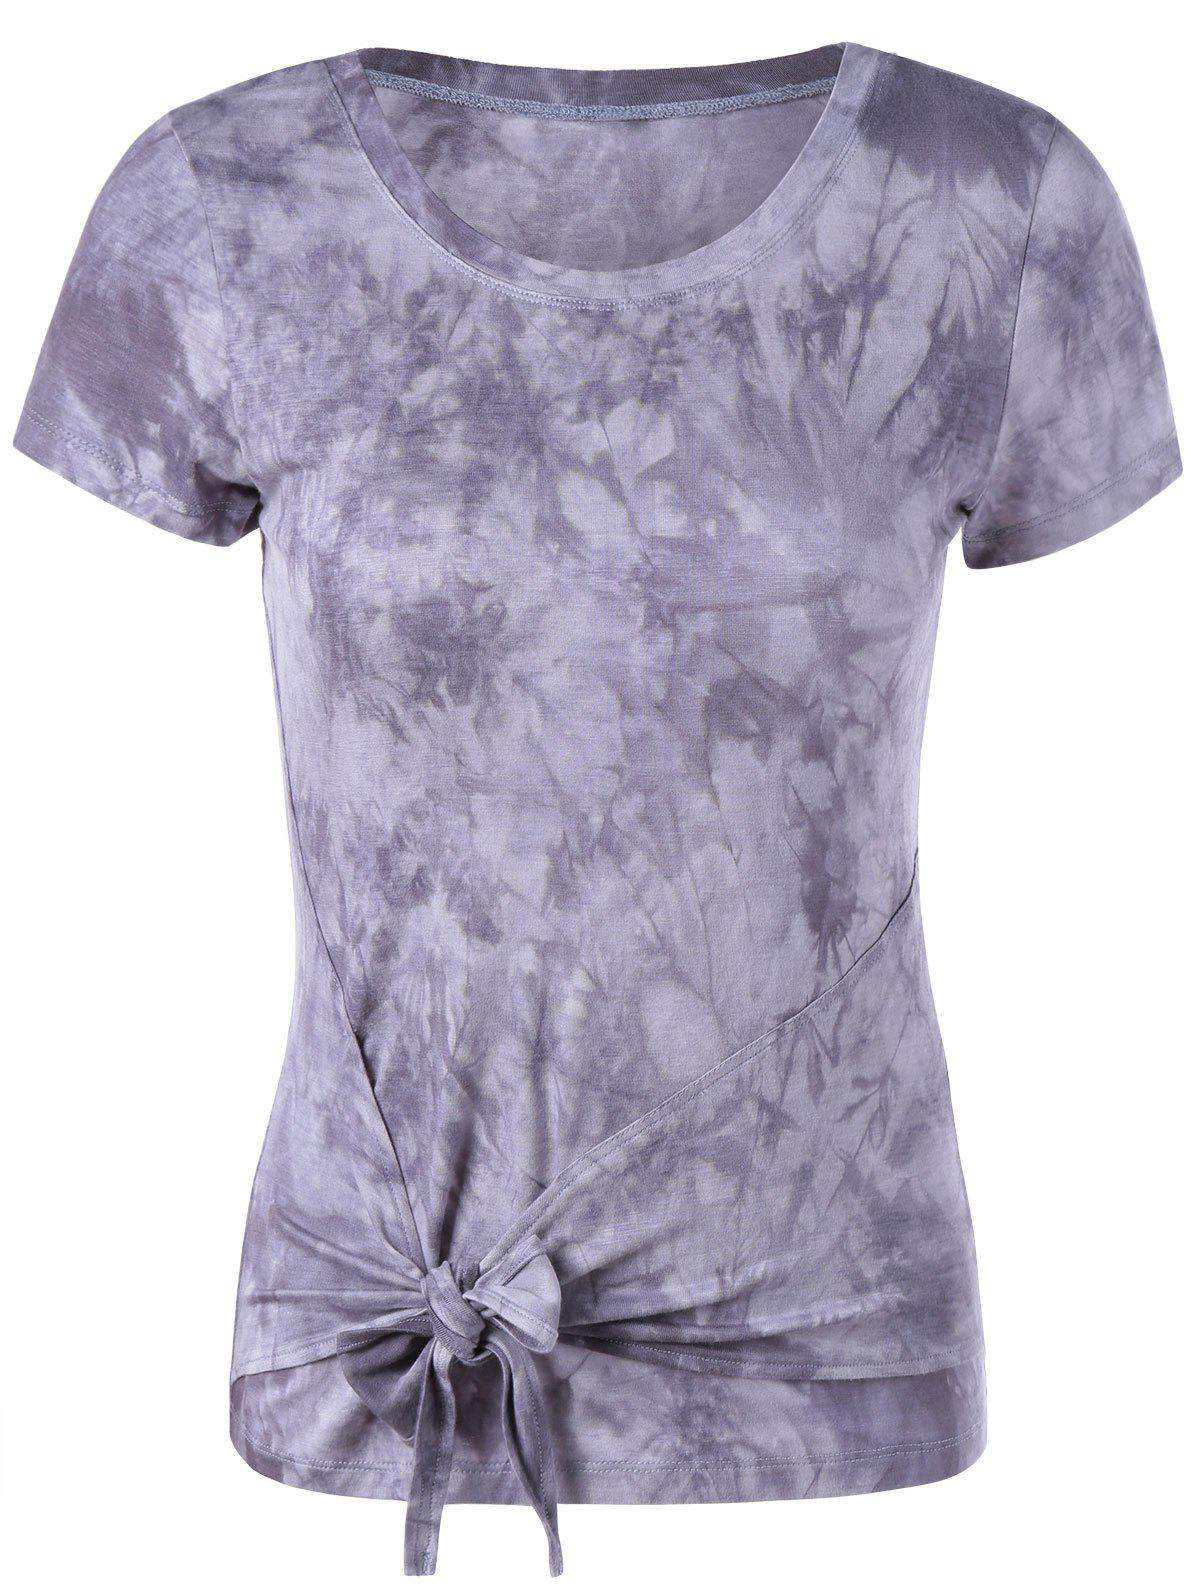 Fashionable Women's Round Collar Short Sleeve T-Shirt - GREY/WHITE L